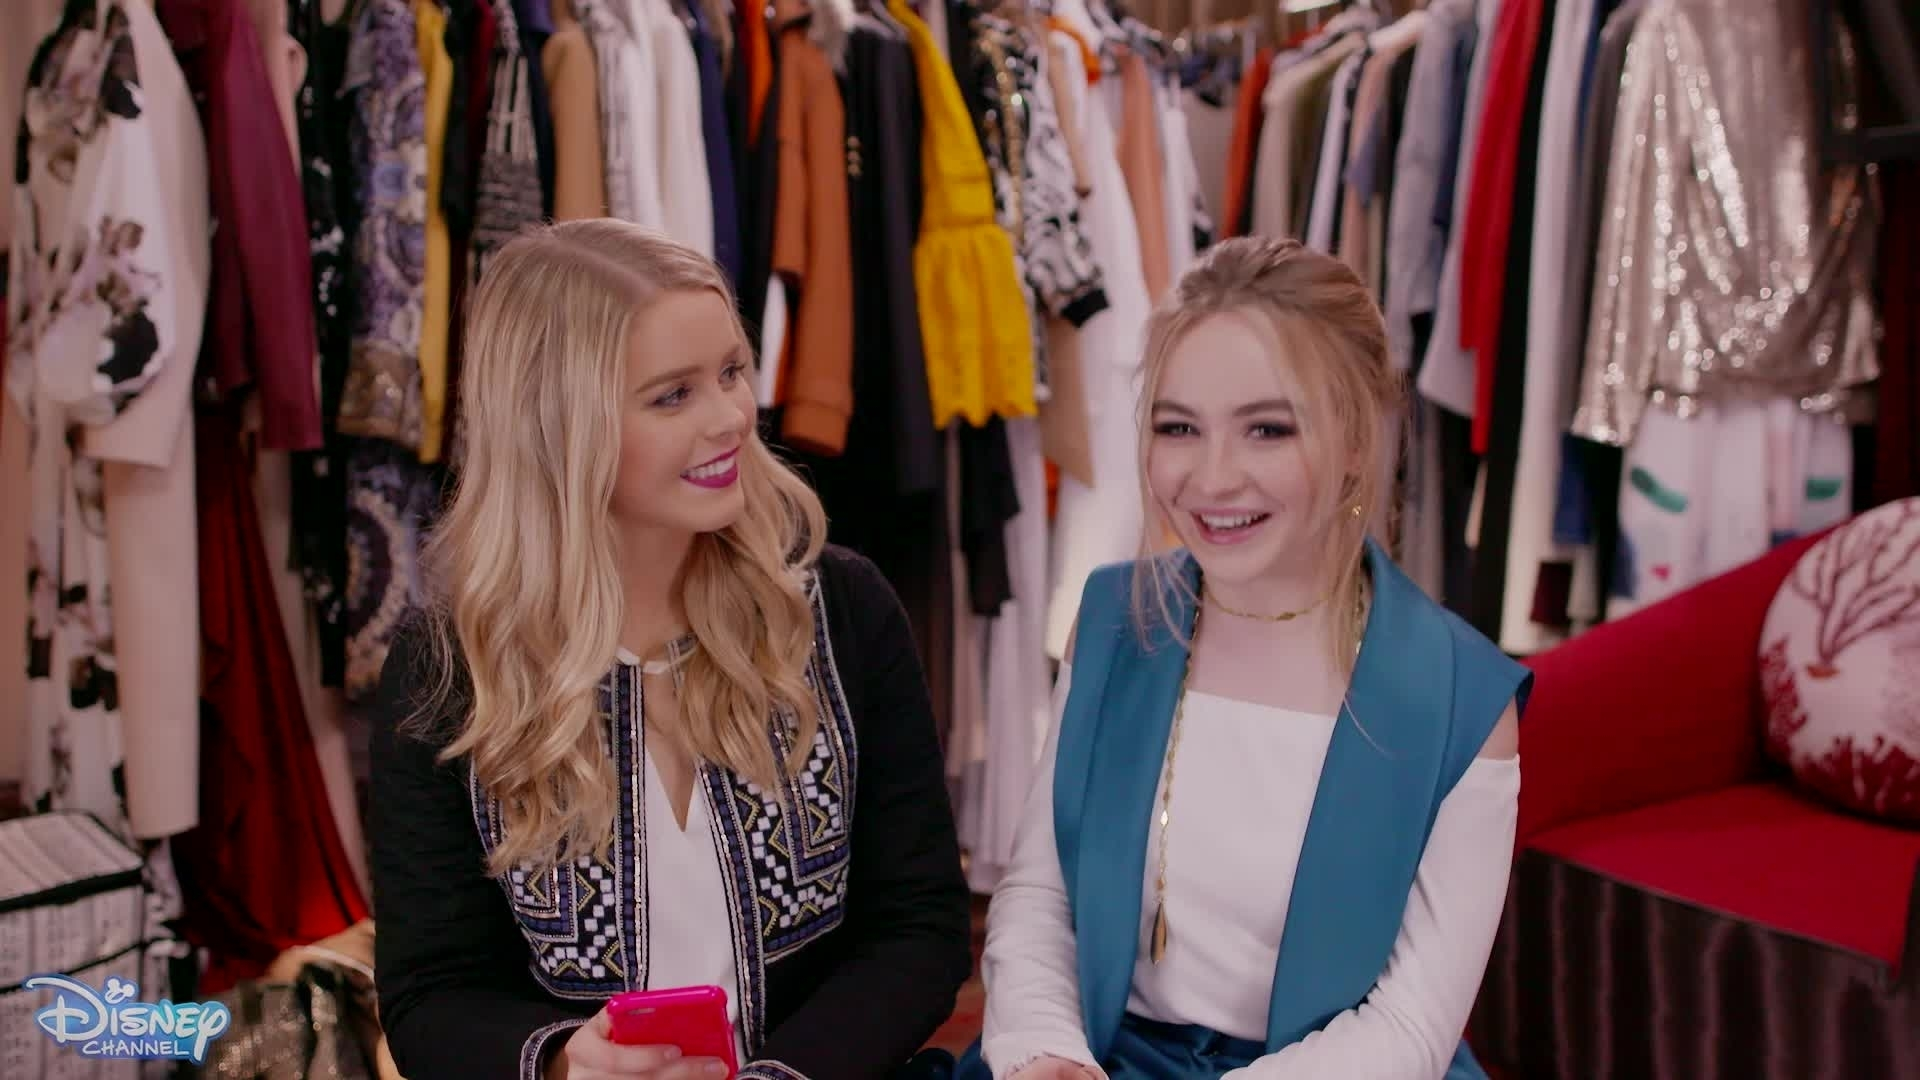 The Style Edit - Sabrina Carpenter: What's In My Bag?